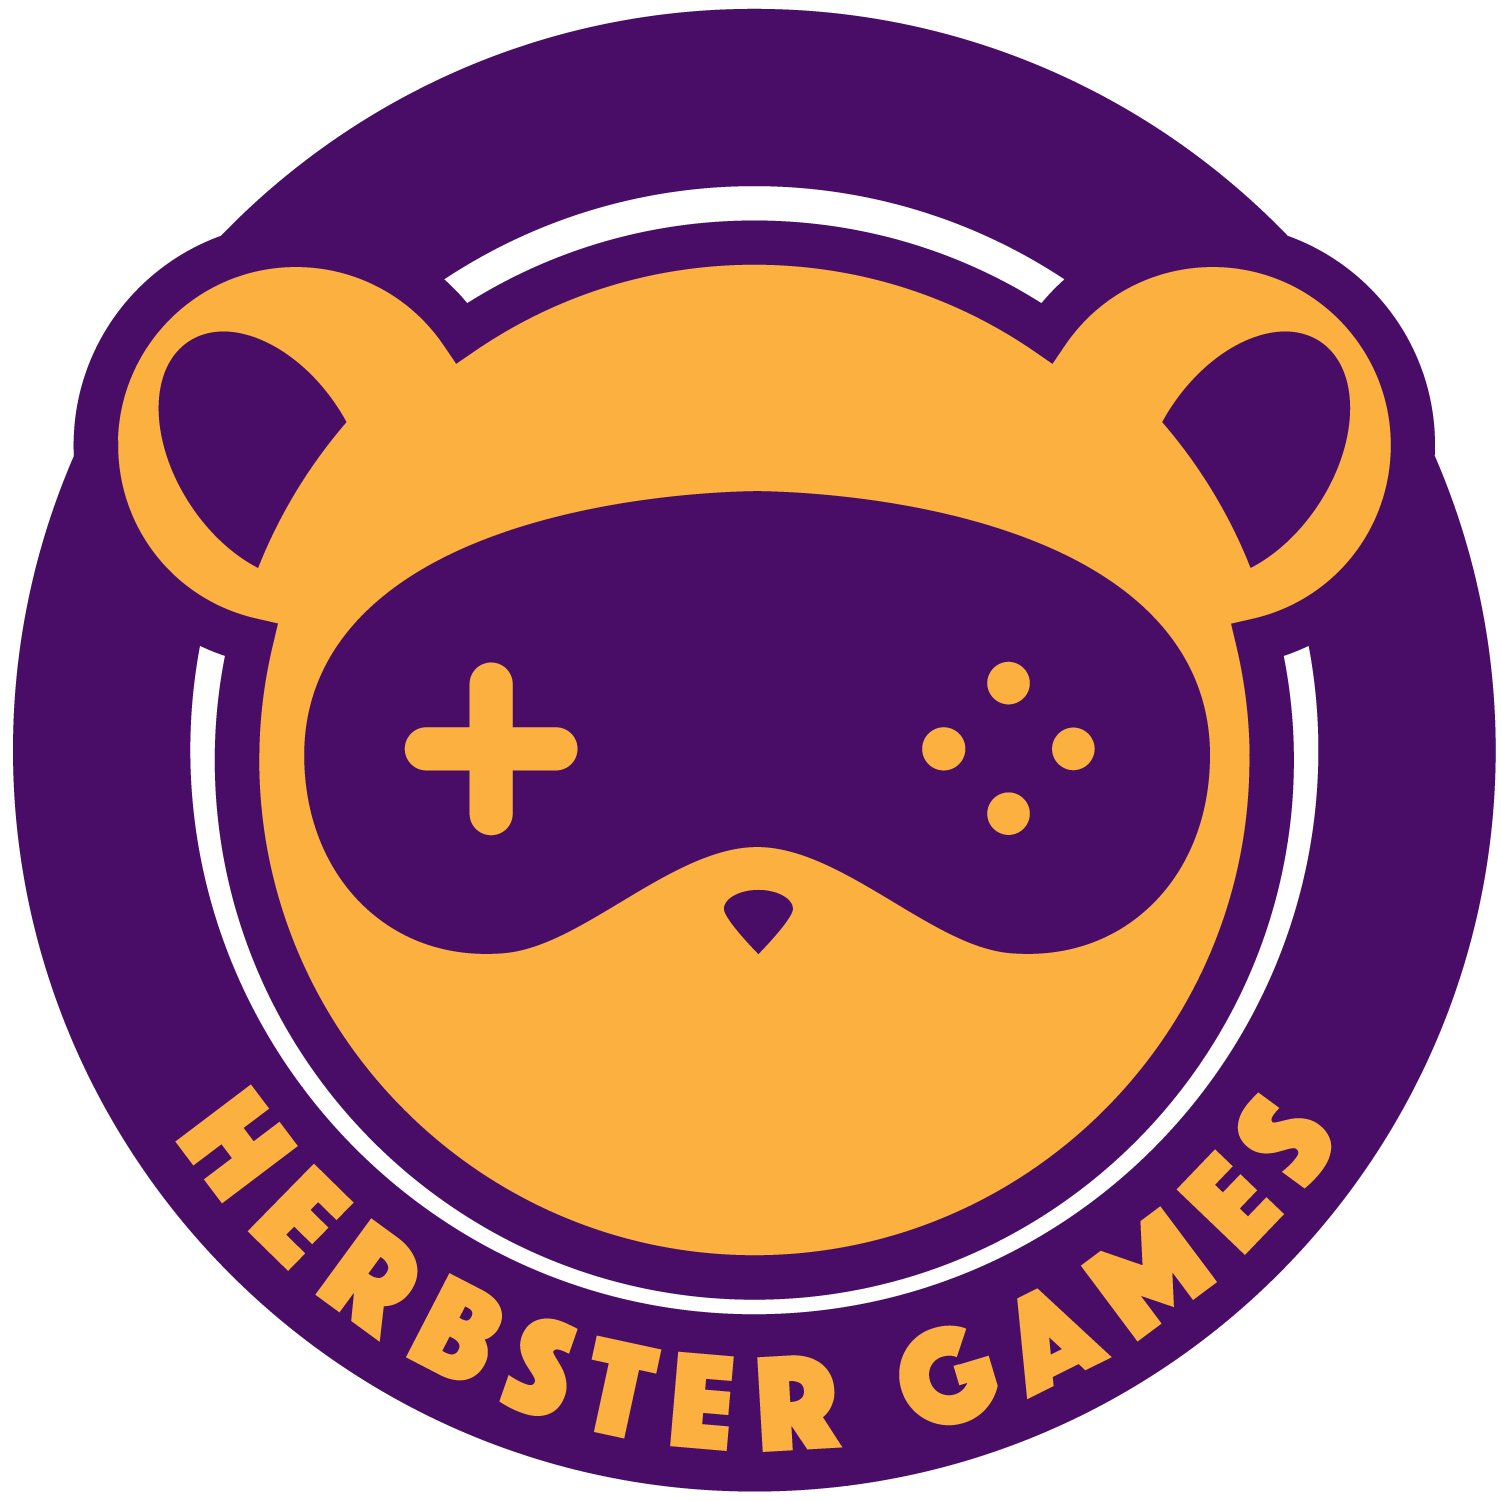 Herbster Games